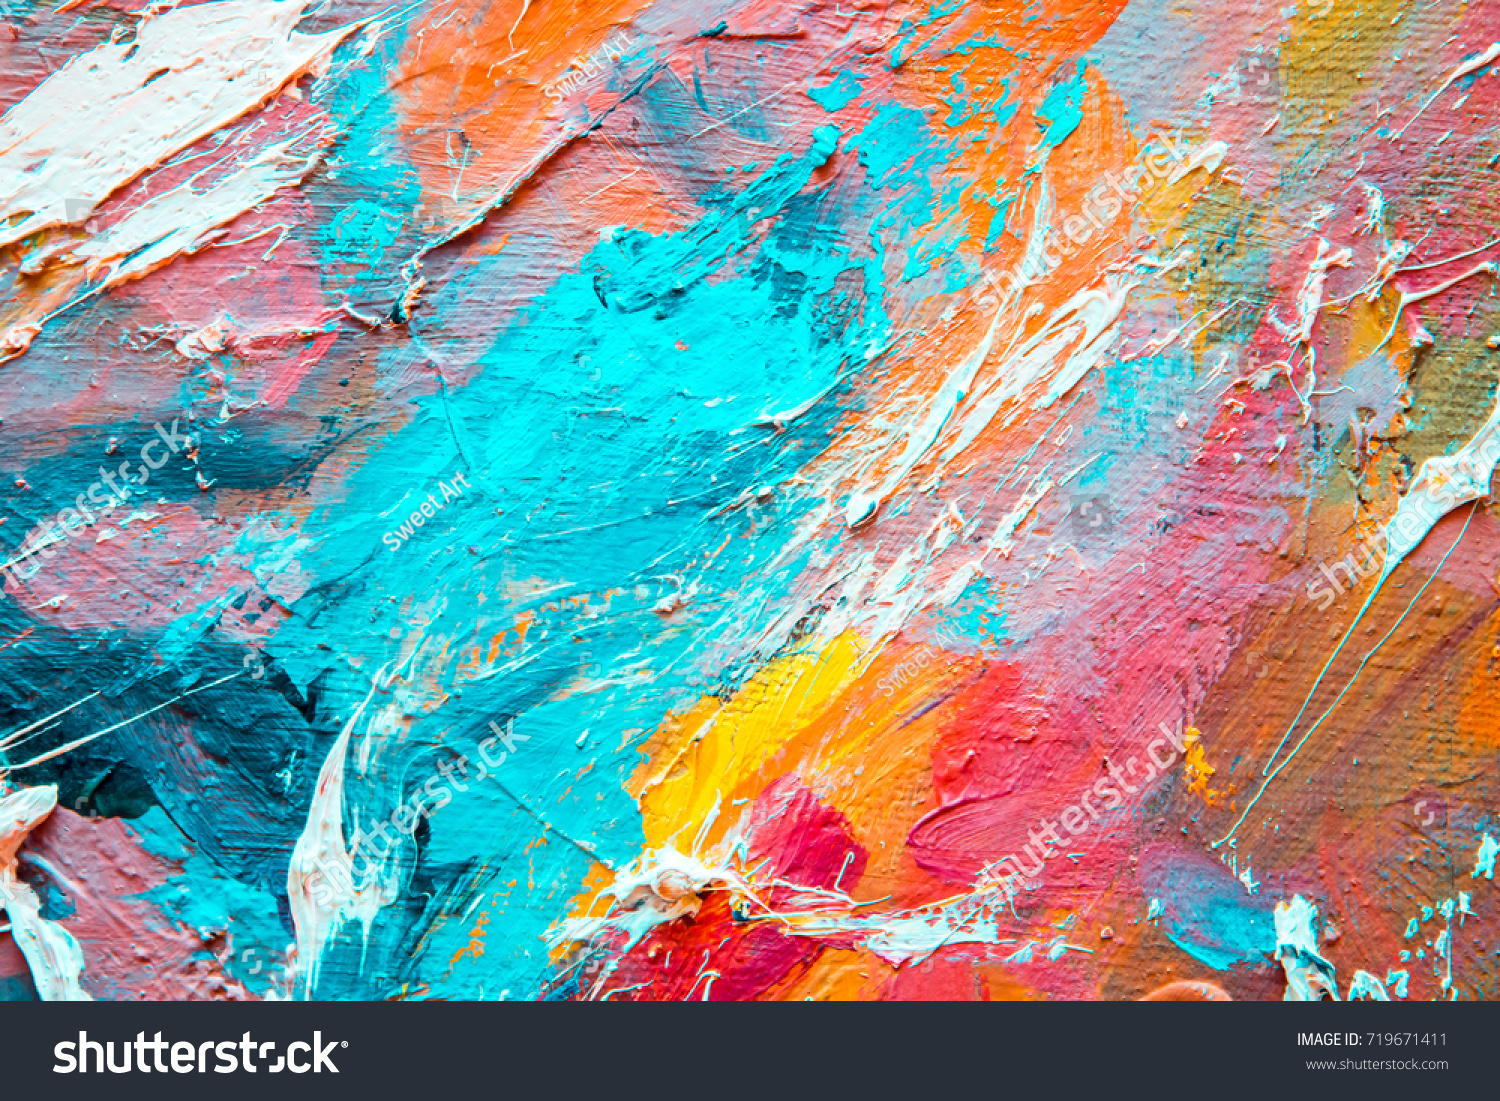 colorful background bright texture hand drawnのイラスト素材